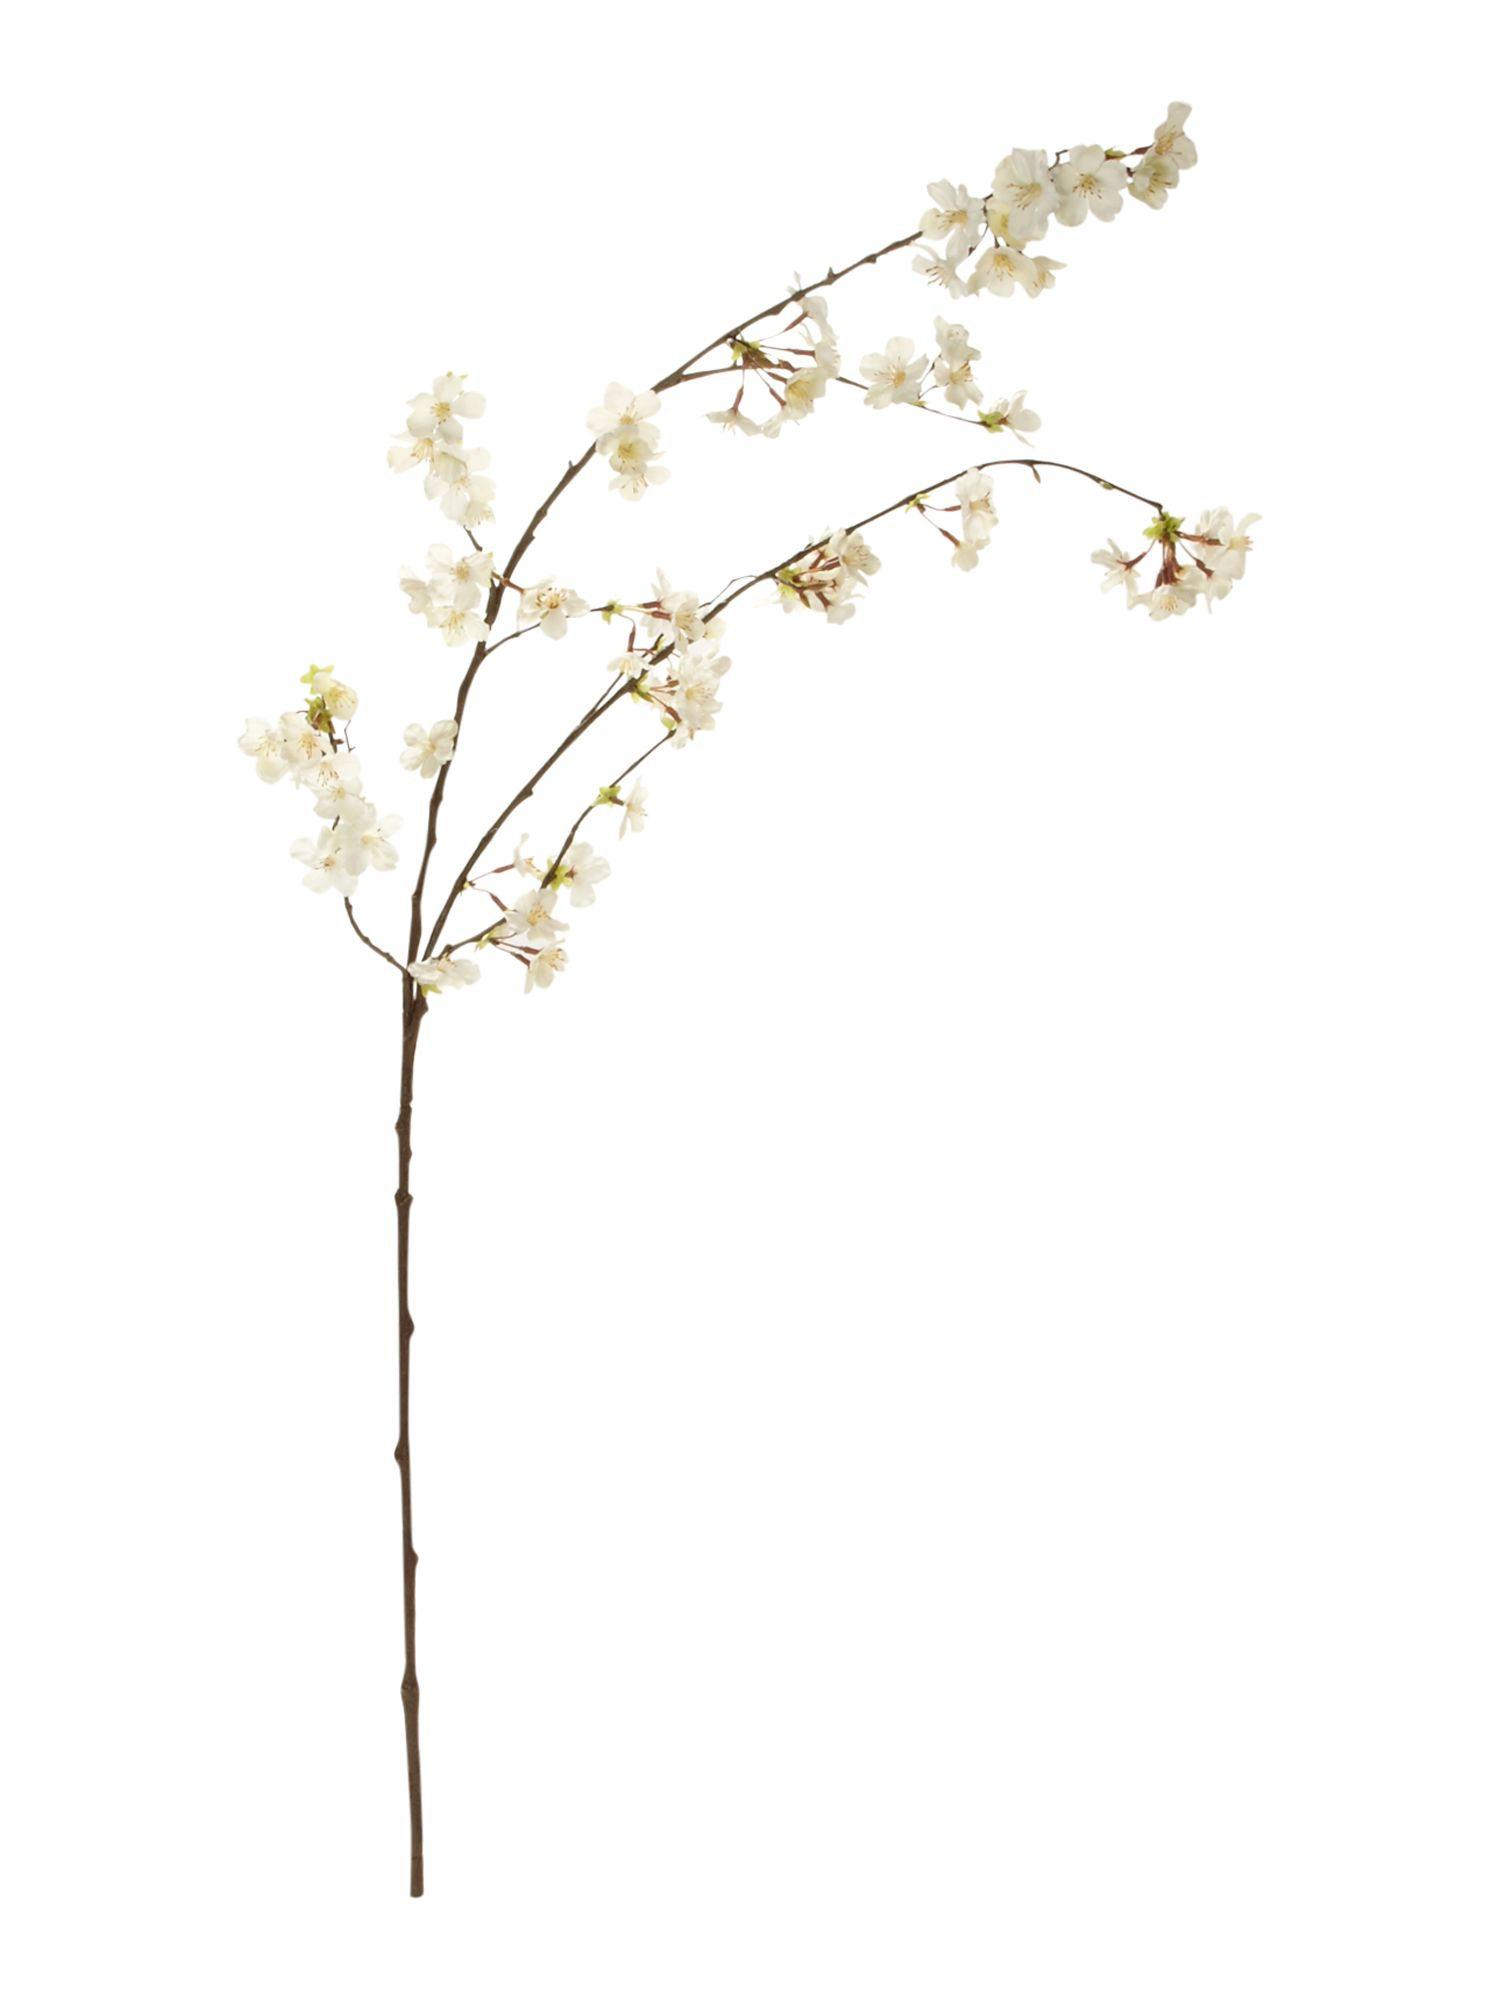 Linea Cherry blossom branch